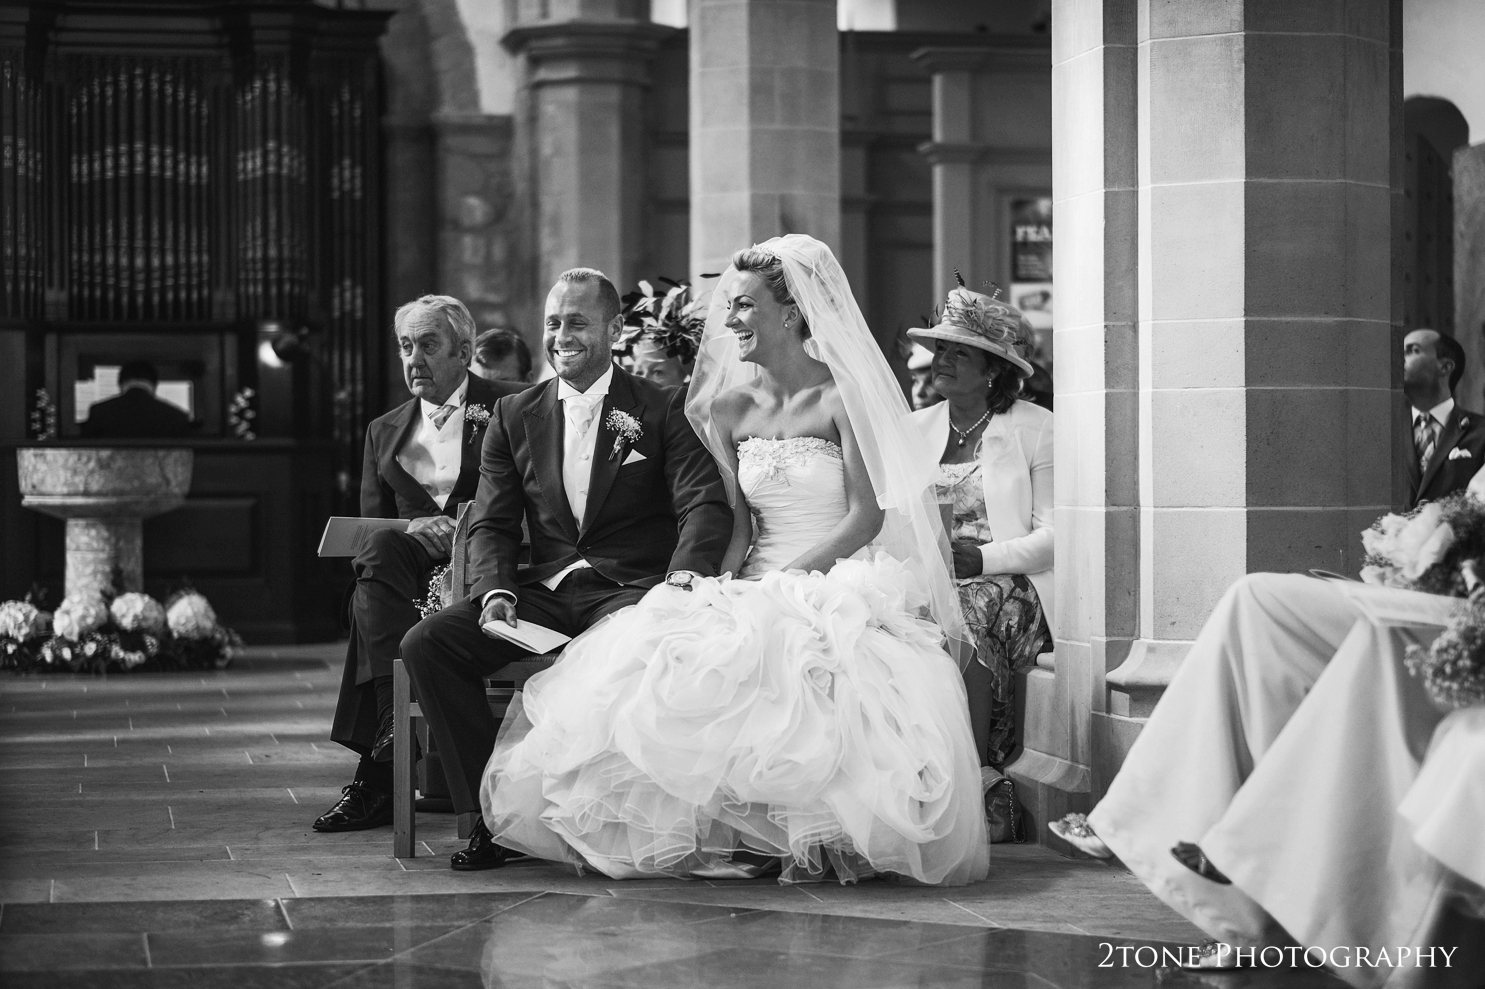 wedding ceremony at St Brandon's church, Brancepeth, Durham.  Wedding photography by www.2tonephotography.co.uk